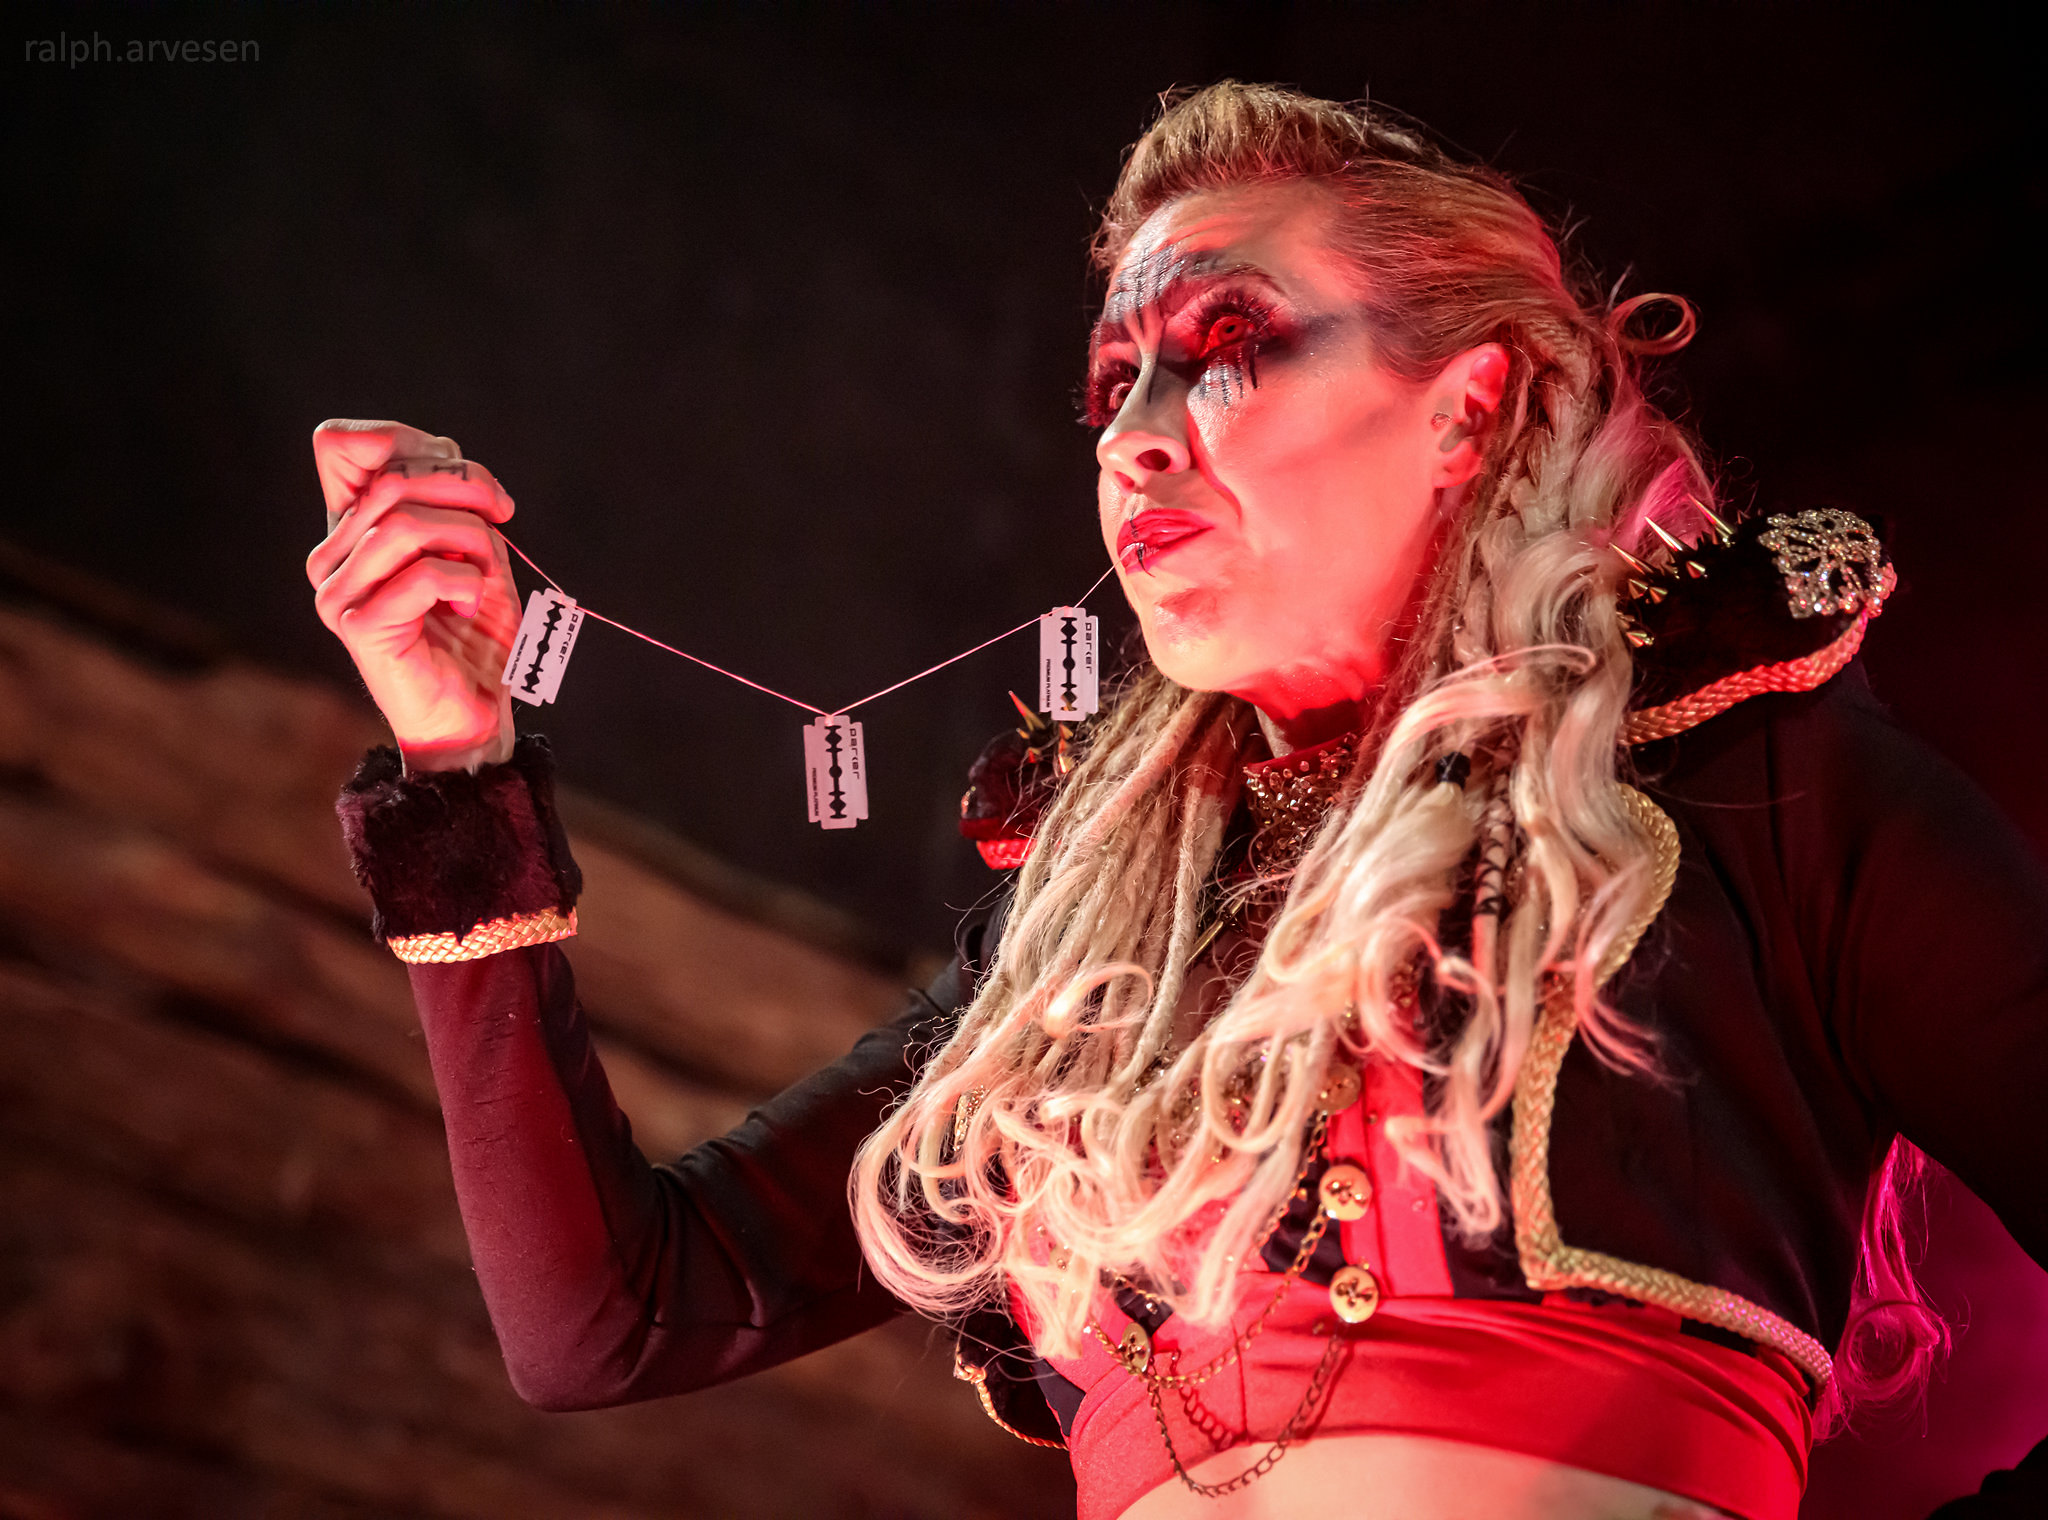 Hellzapoppin Circus Sideshow Review | Texas Review | Ralph Arvesen